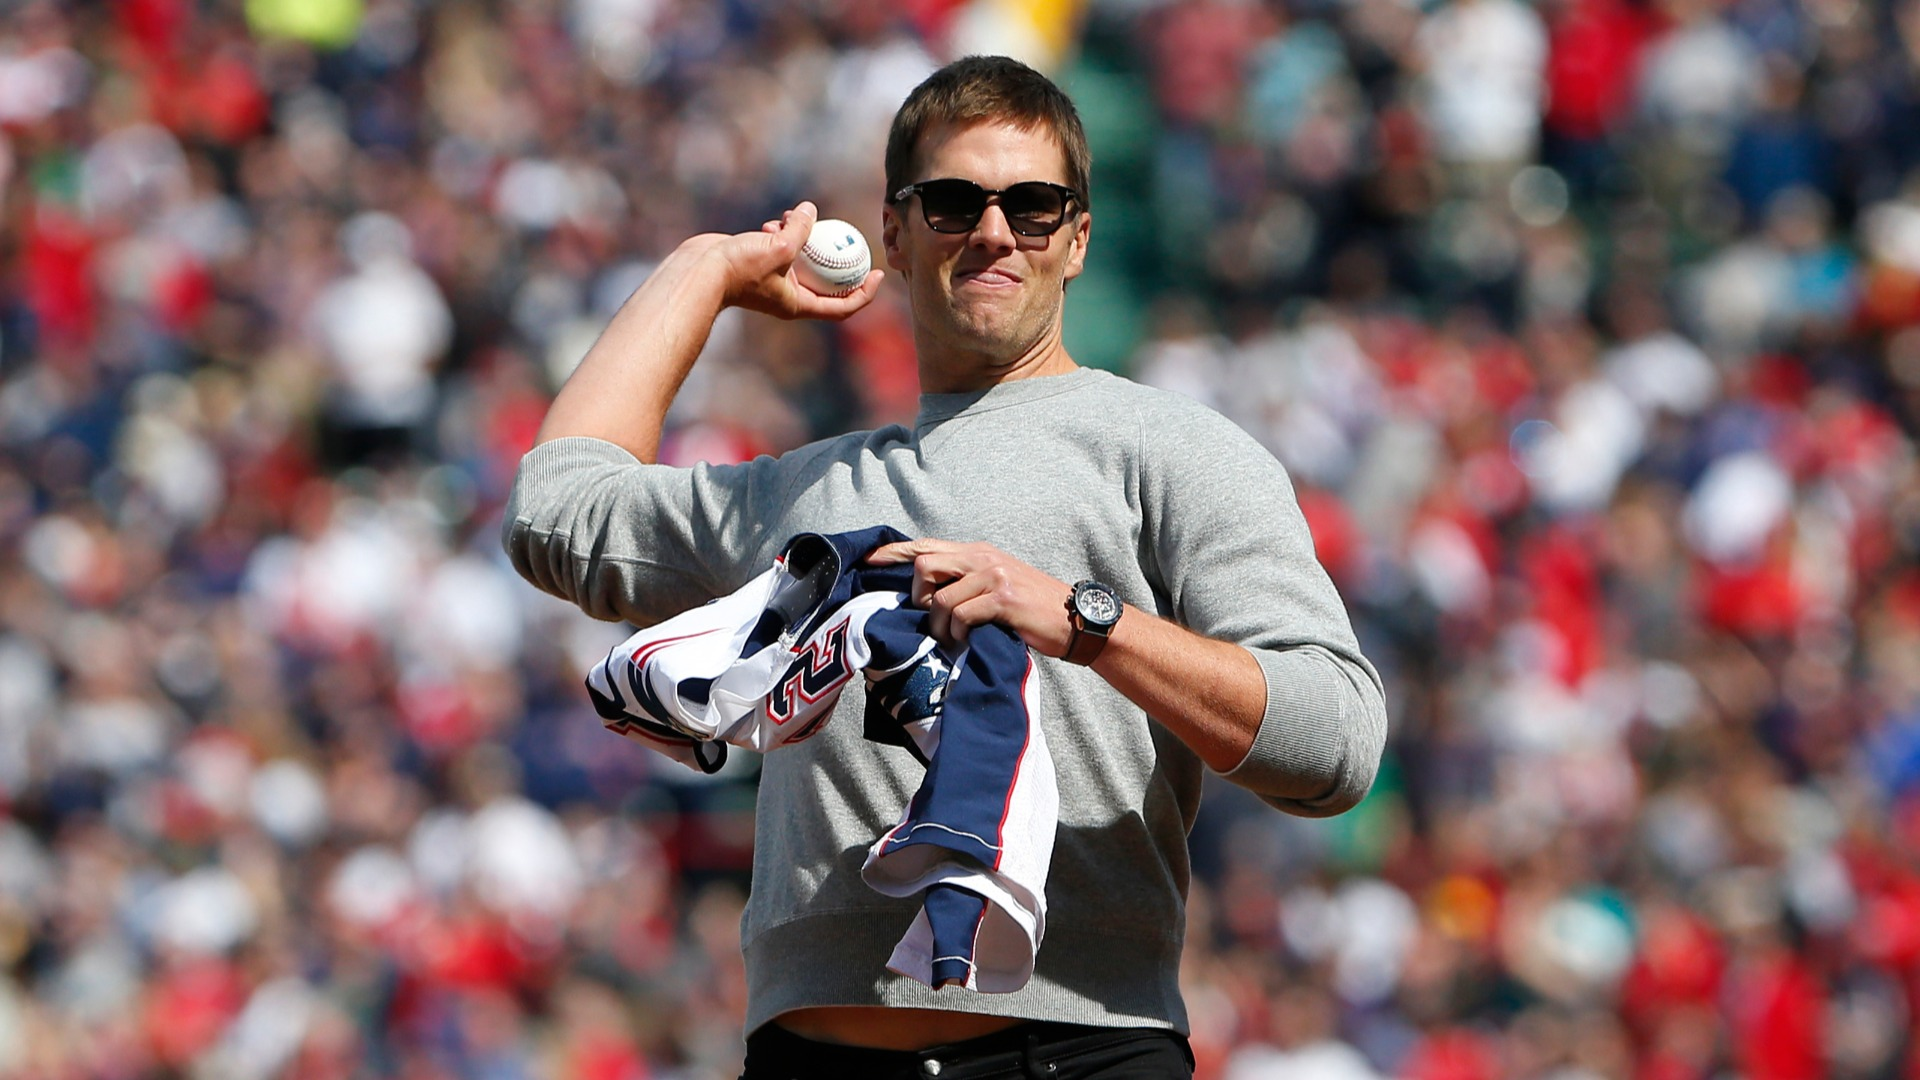 Tom Brady focused on football over baseball and was duly rewarded, but he playfully hinted at a remarkable about-turn on MLB's Opening Day.